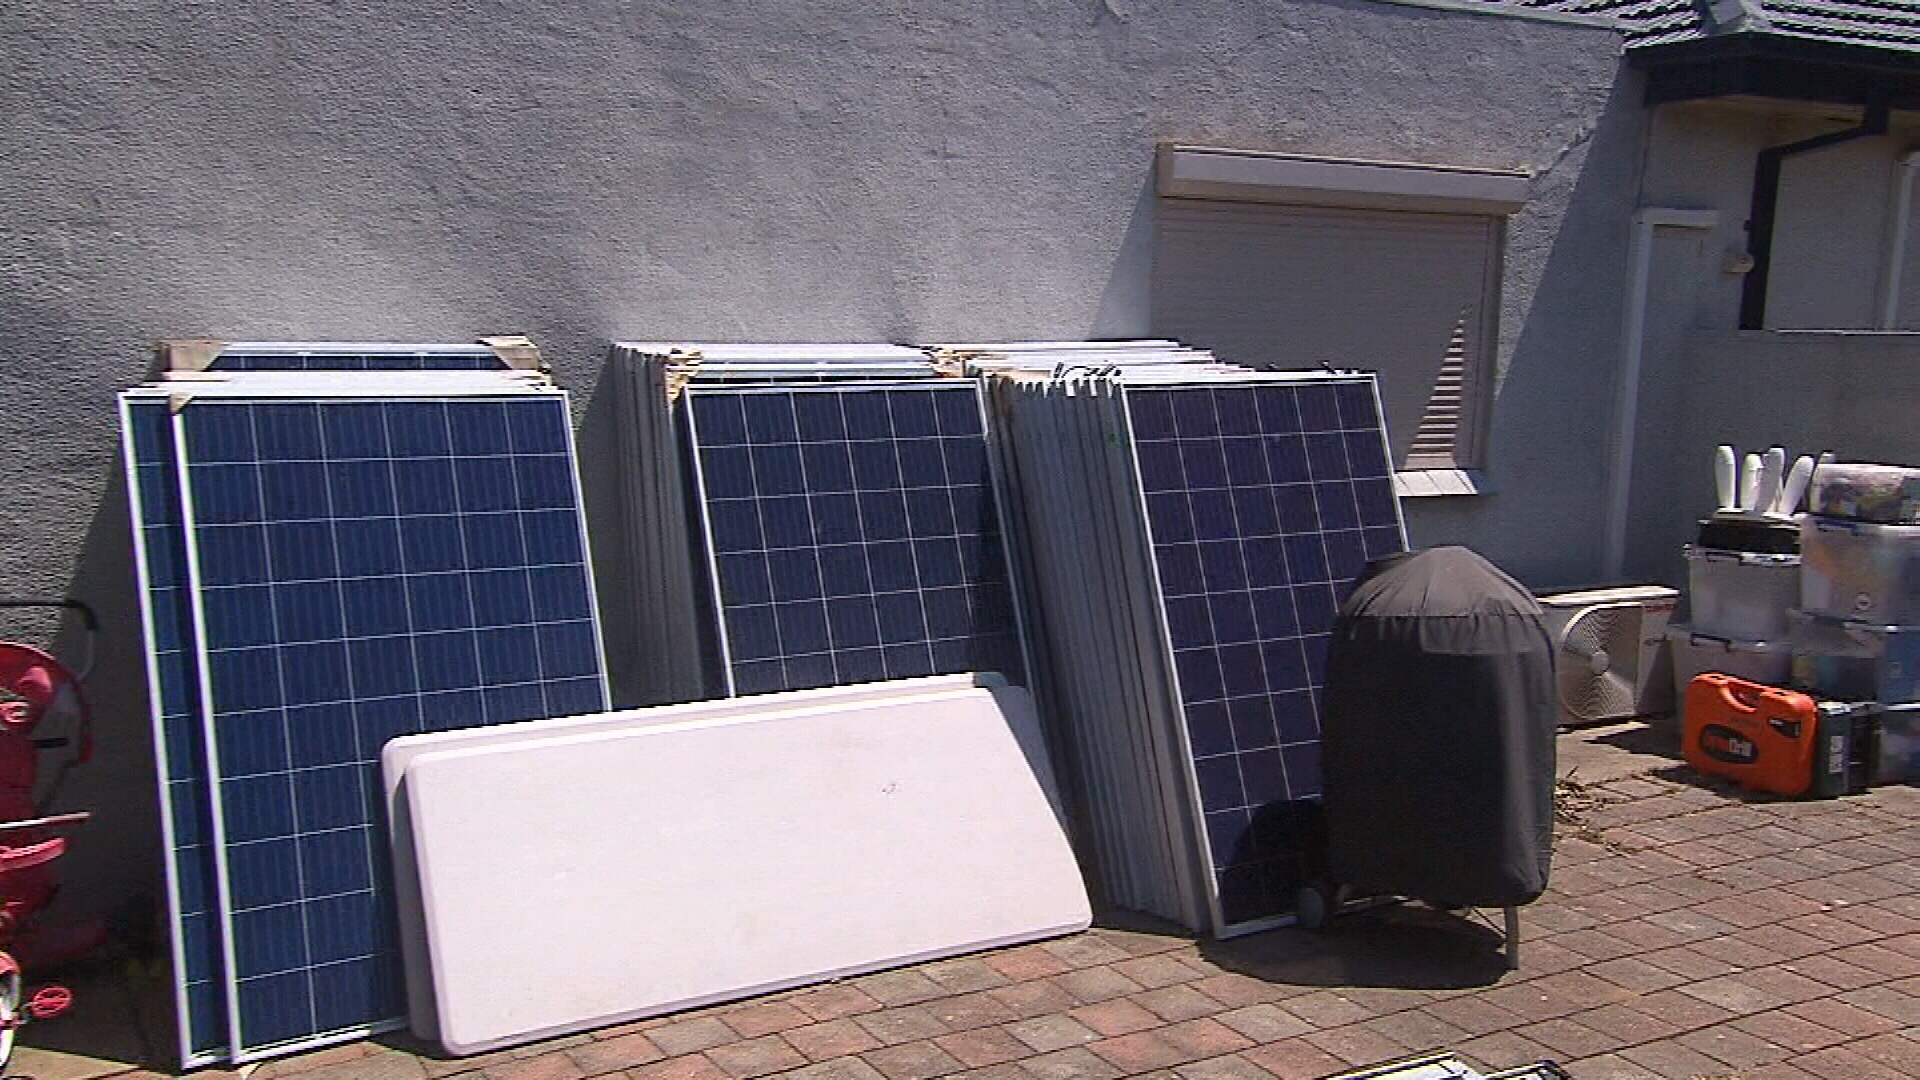 Sa Homeowners Warned About Risky Solar Panel Installations Ford Roof